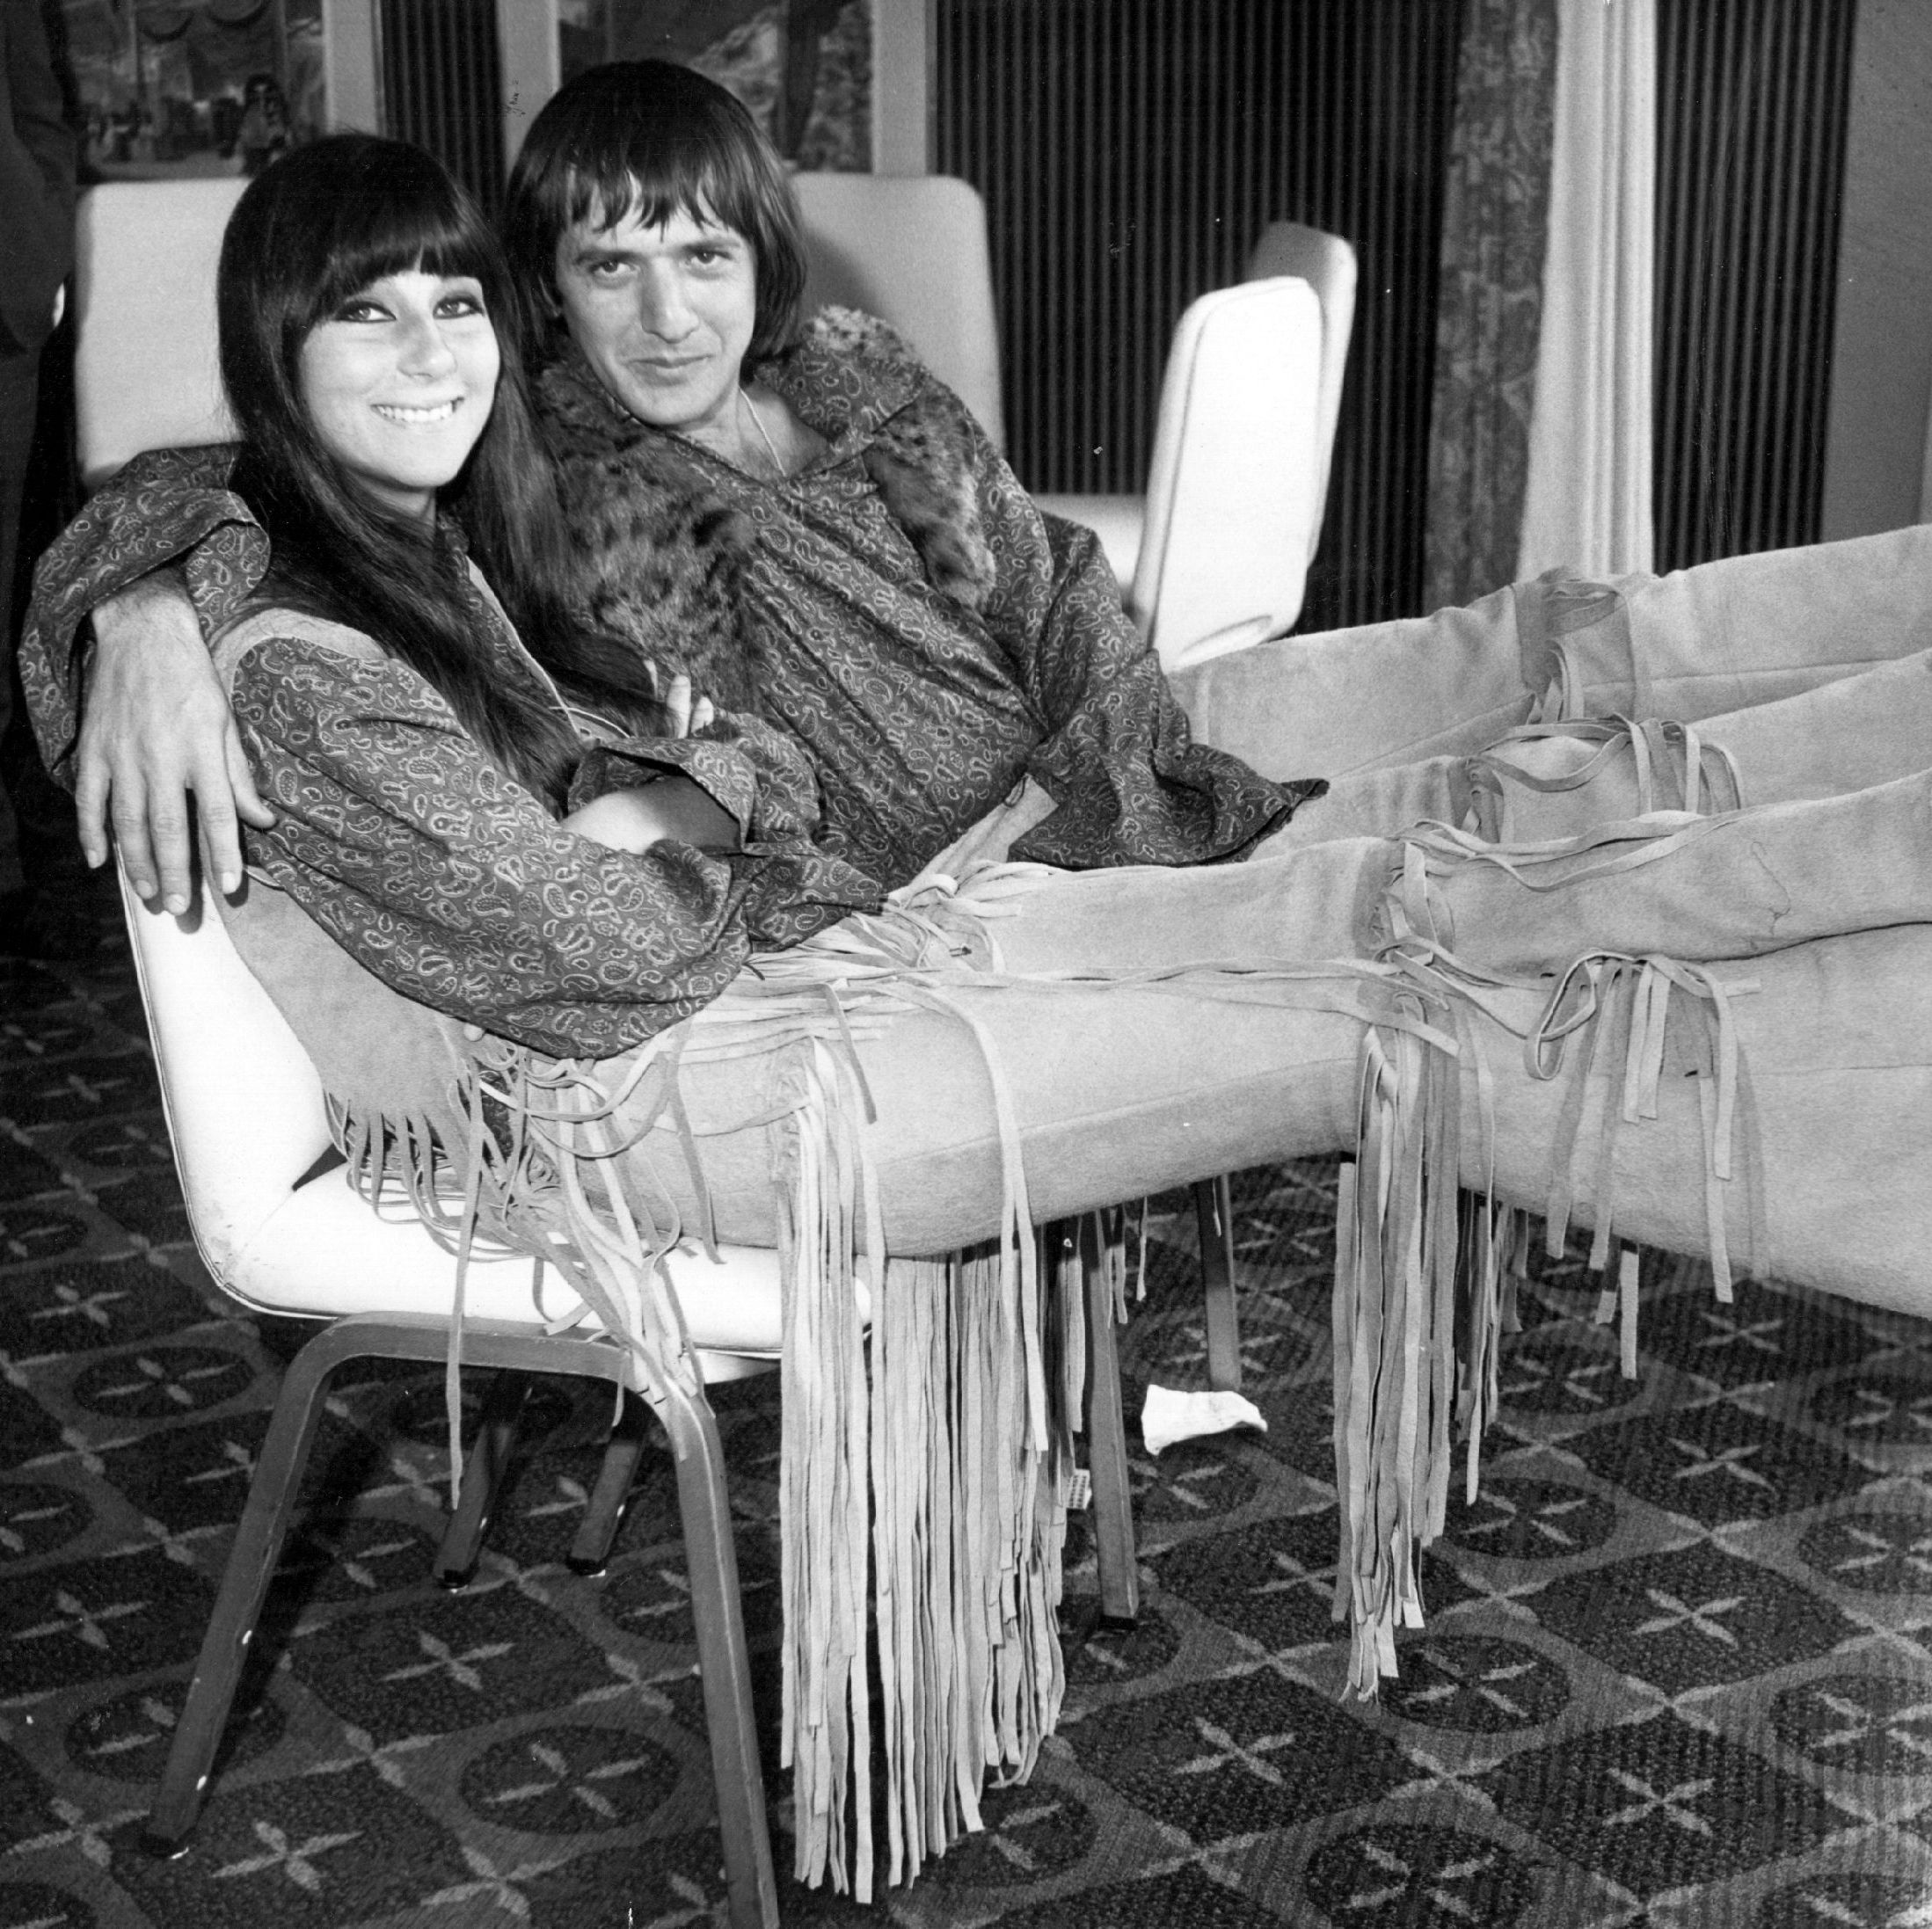 Cher and Sonny Bono Sonny and Cher were a singing powerhouse in the '60s and '70s, selling 40 million records and making several hit TV shows together. But their career as a rockstar duo came to a halt in 1975 with their divorce.